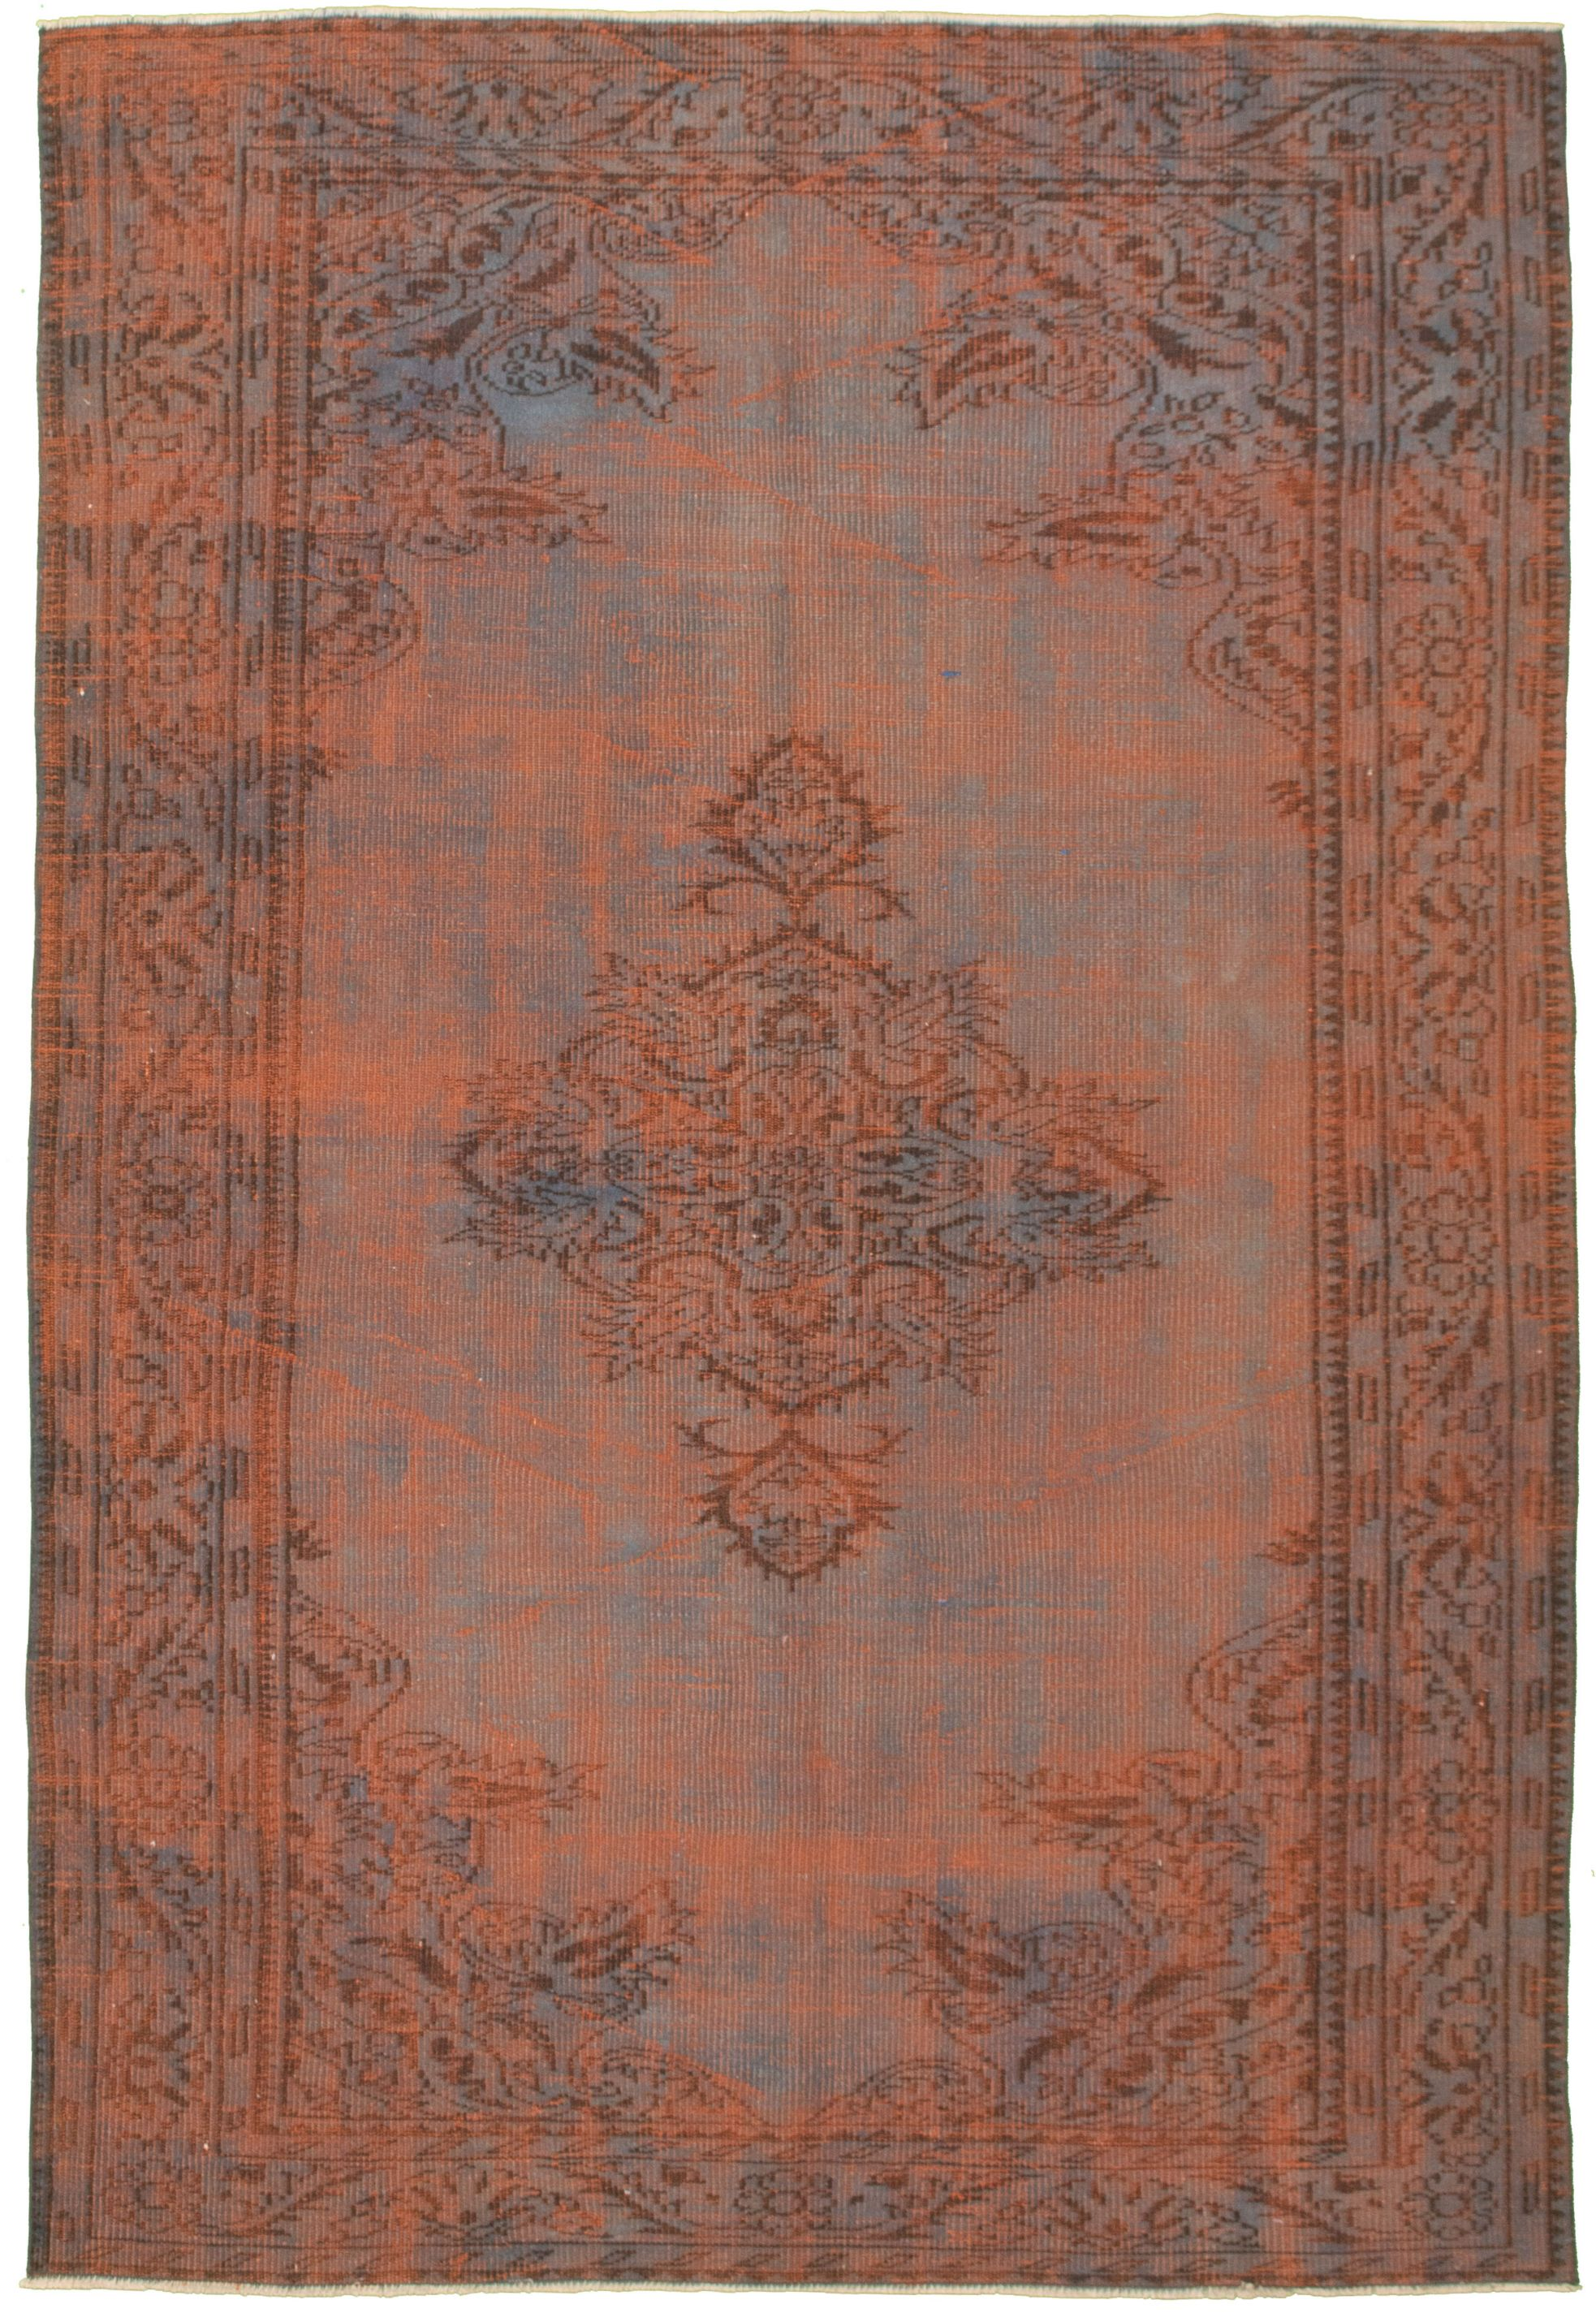 """Hand-knotted Color Transition Orange Wool Rug 6'0"""" x 8'10"""" Size: 6'0"""" x 8'10"""""""